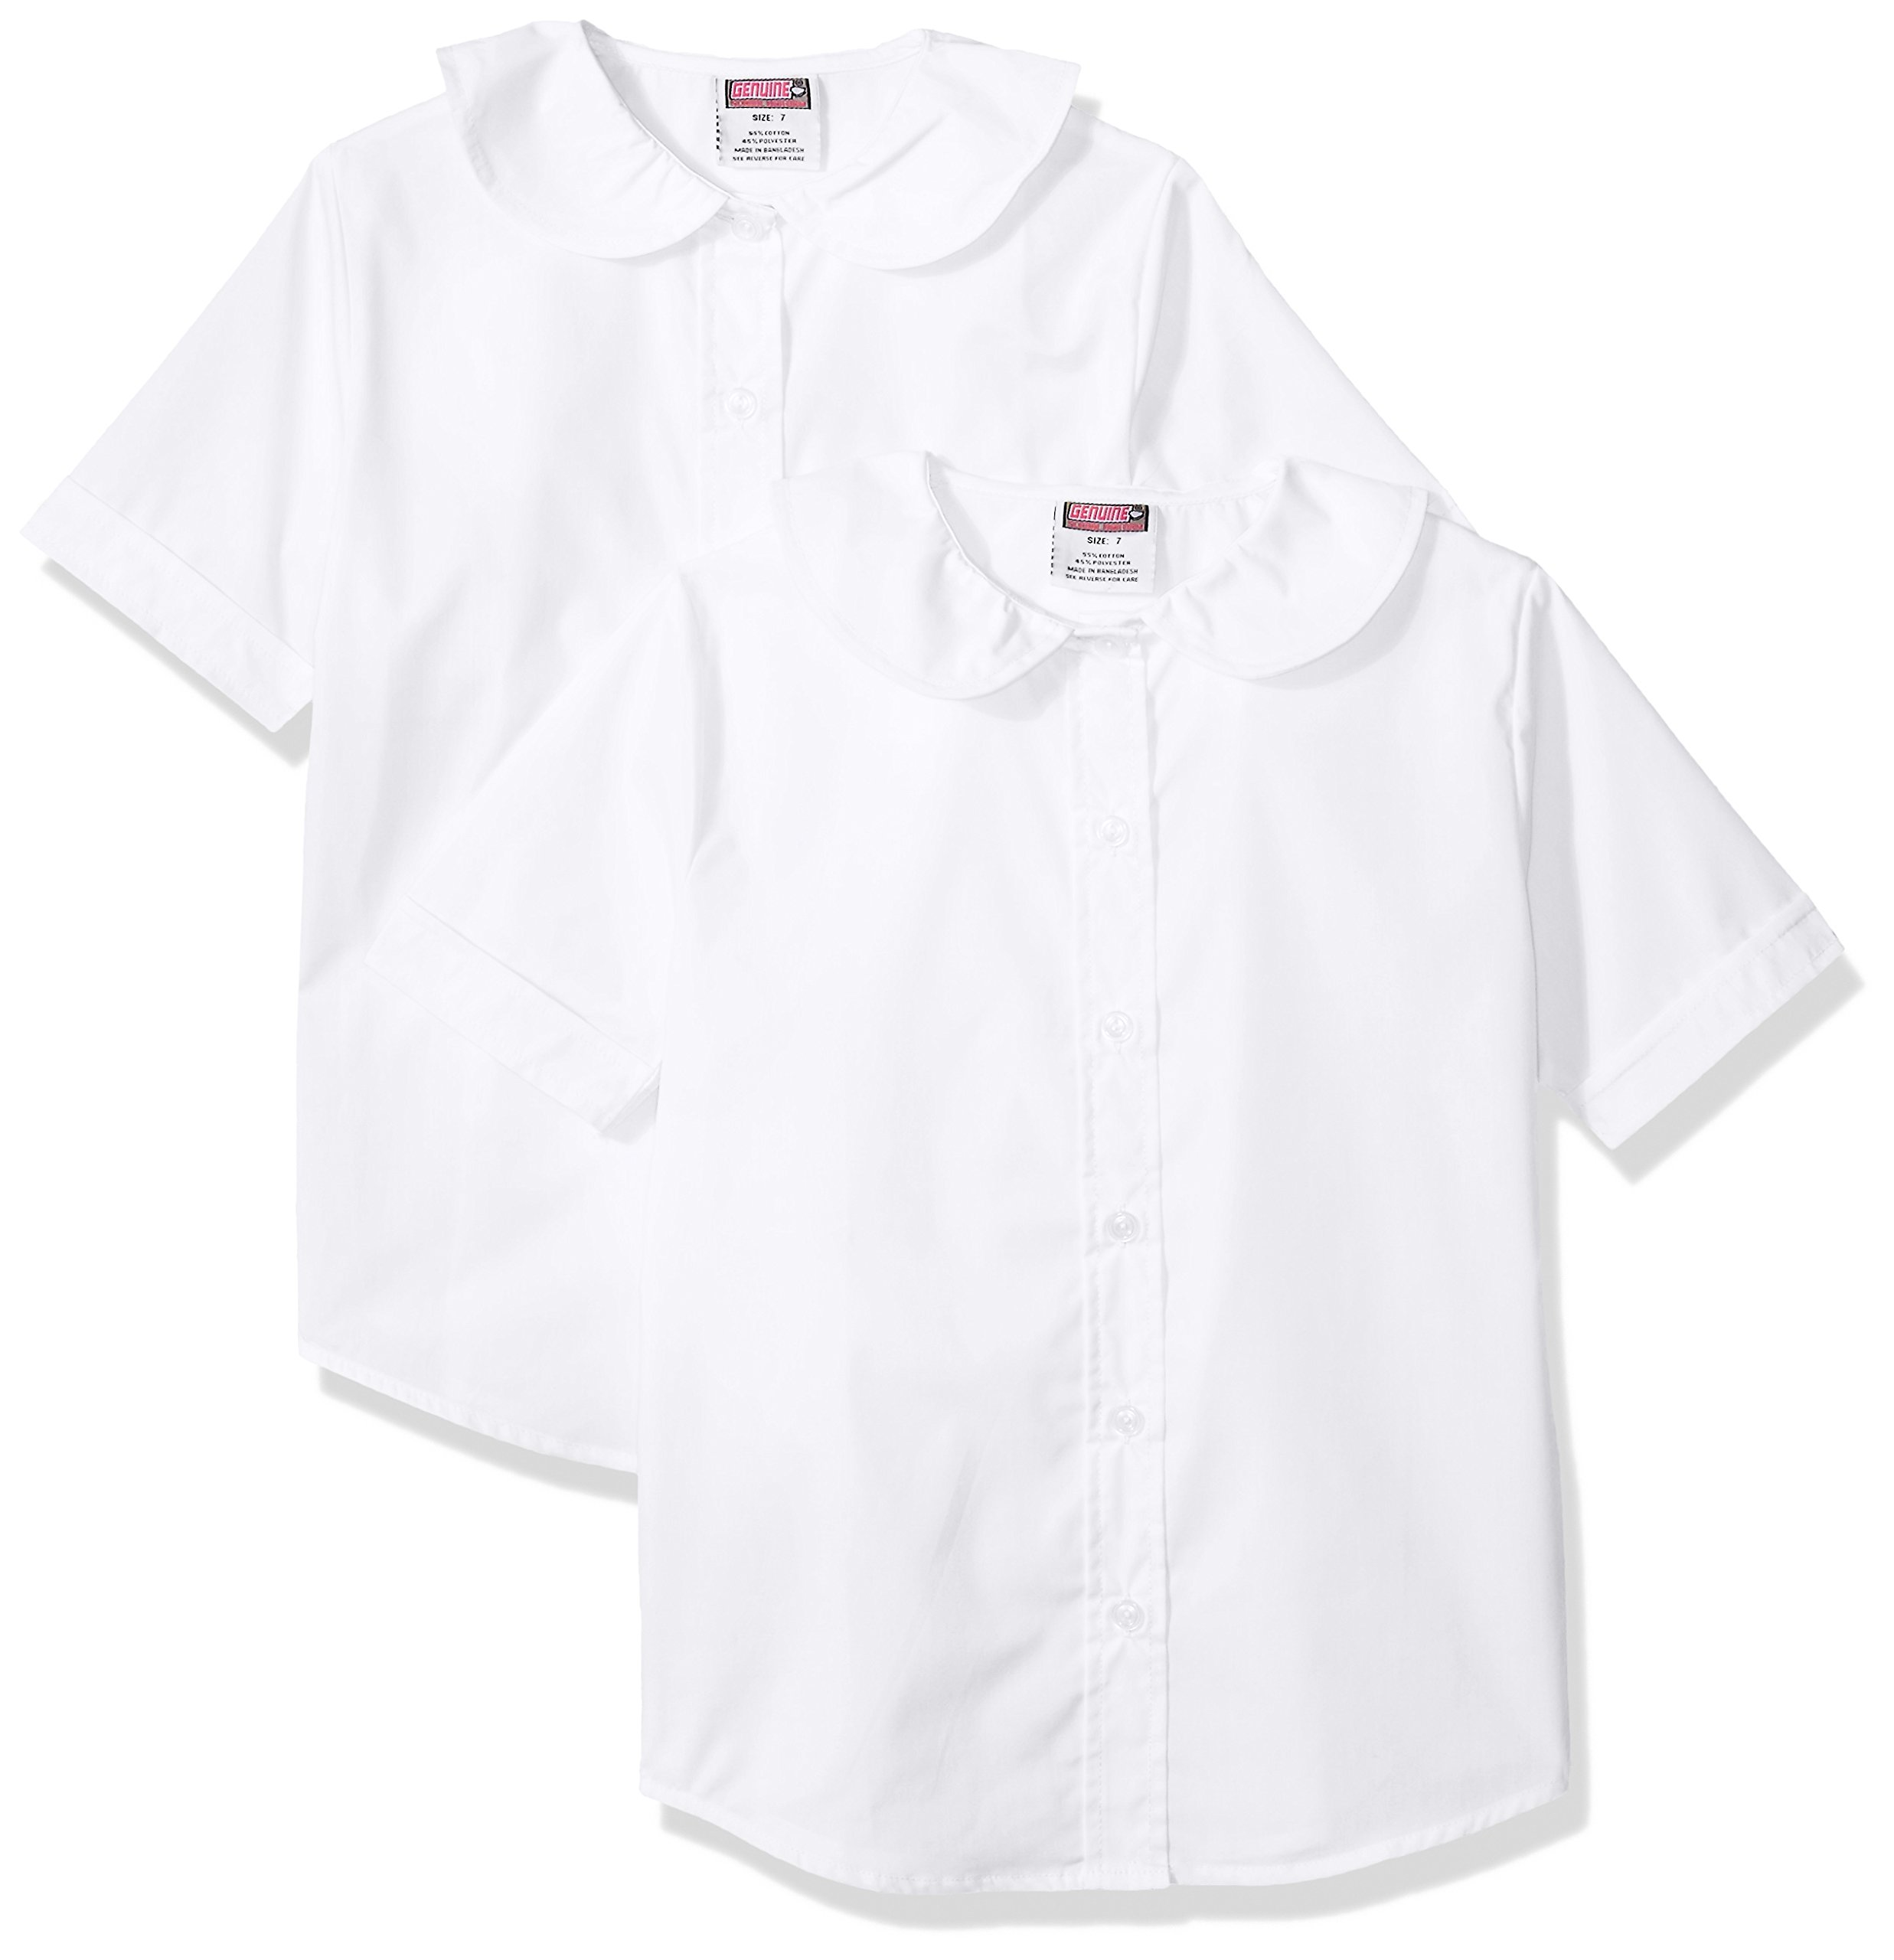 Genuine Girls' 2 Pack Blouse (More Styles Available), Basic White, 8